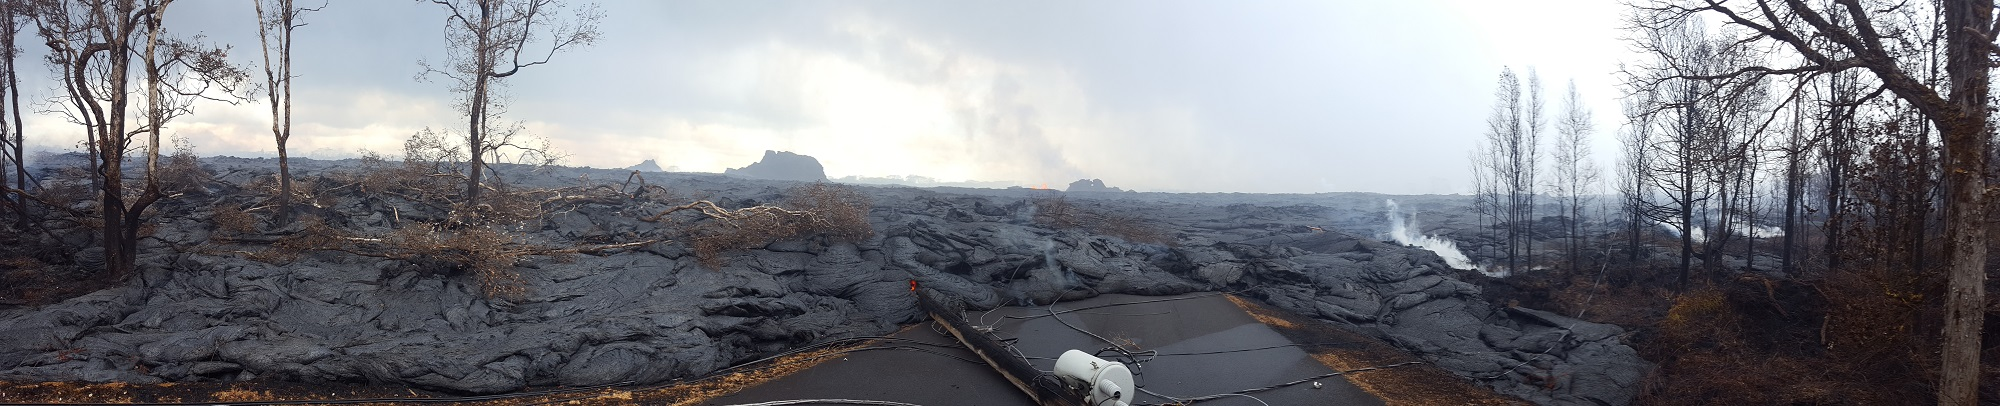 Image of lava flows taken by Dr. Ramsey.